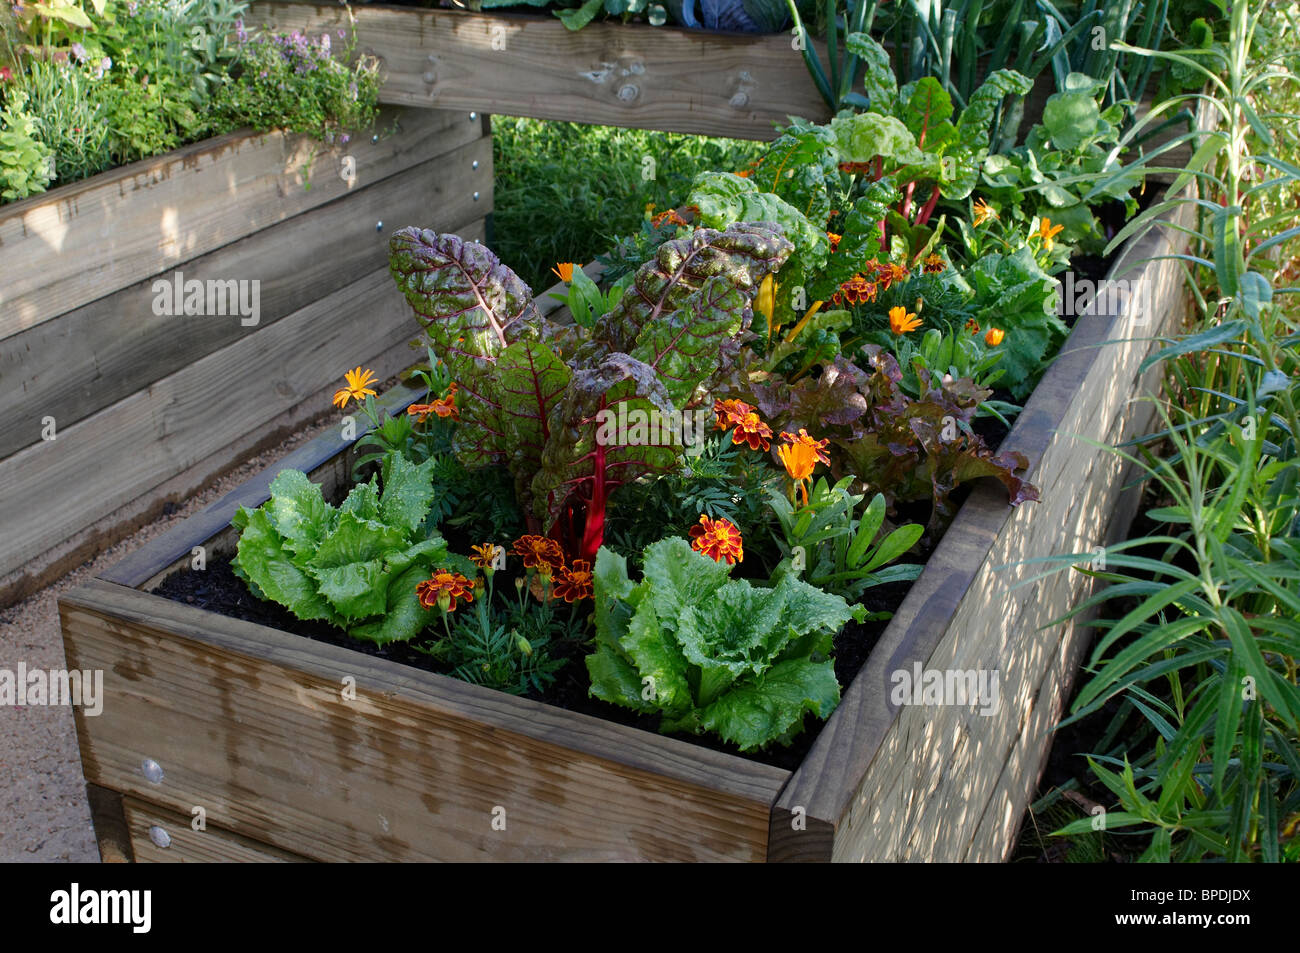 Small urban vegetable garden in enclosed raised beds stock for Portable vegetable garden